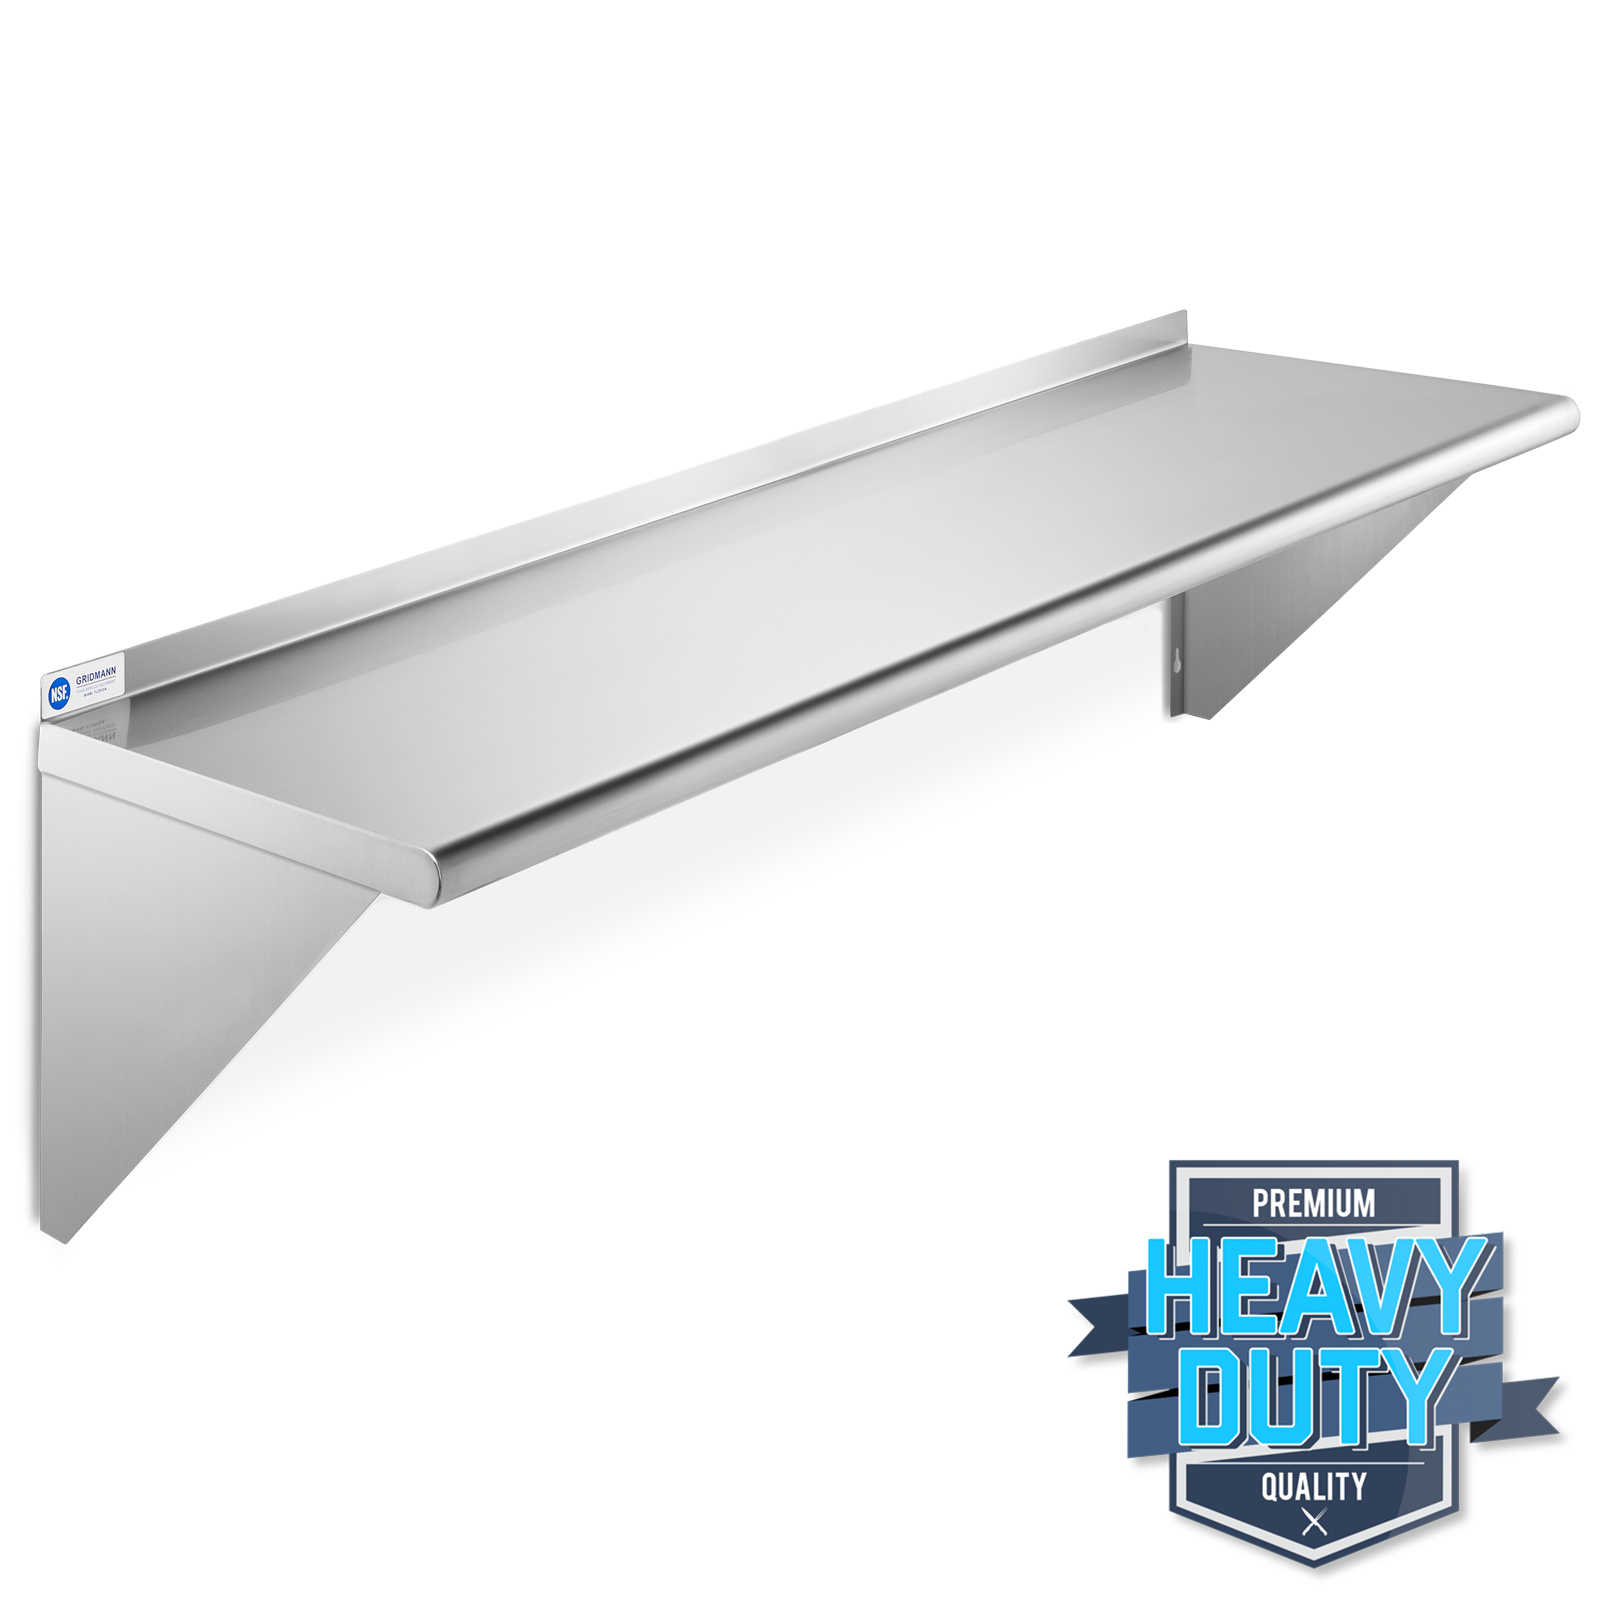 Details about Stainless Steel Commercial Kitchen Wall Shelf Restaurant  Shelving - 12\